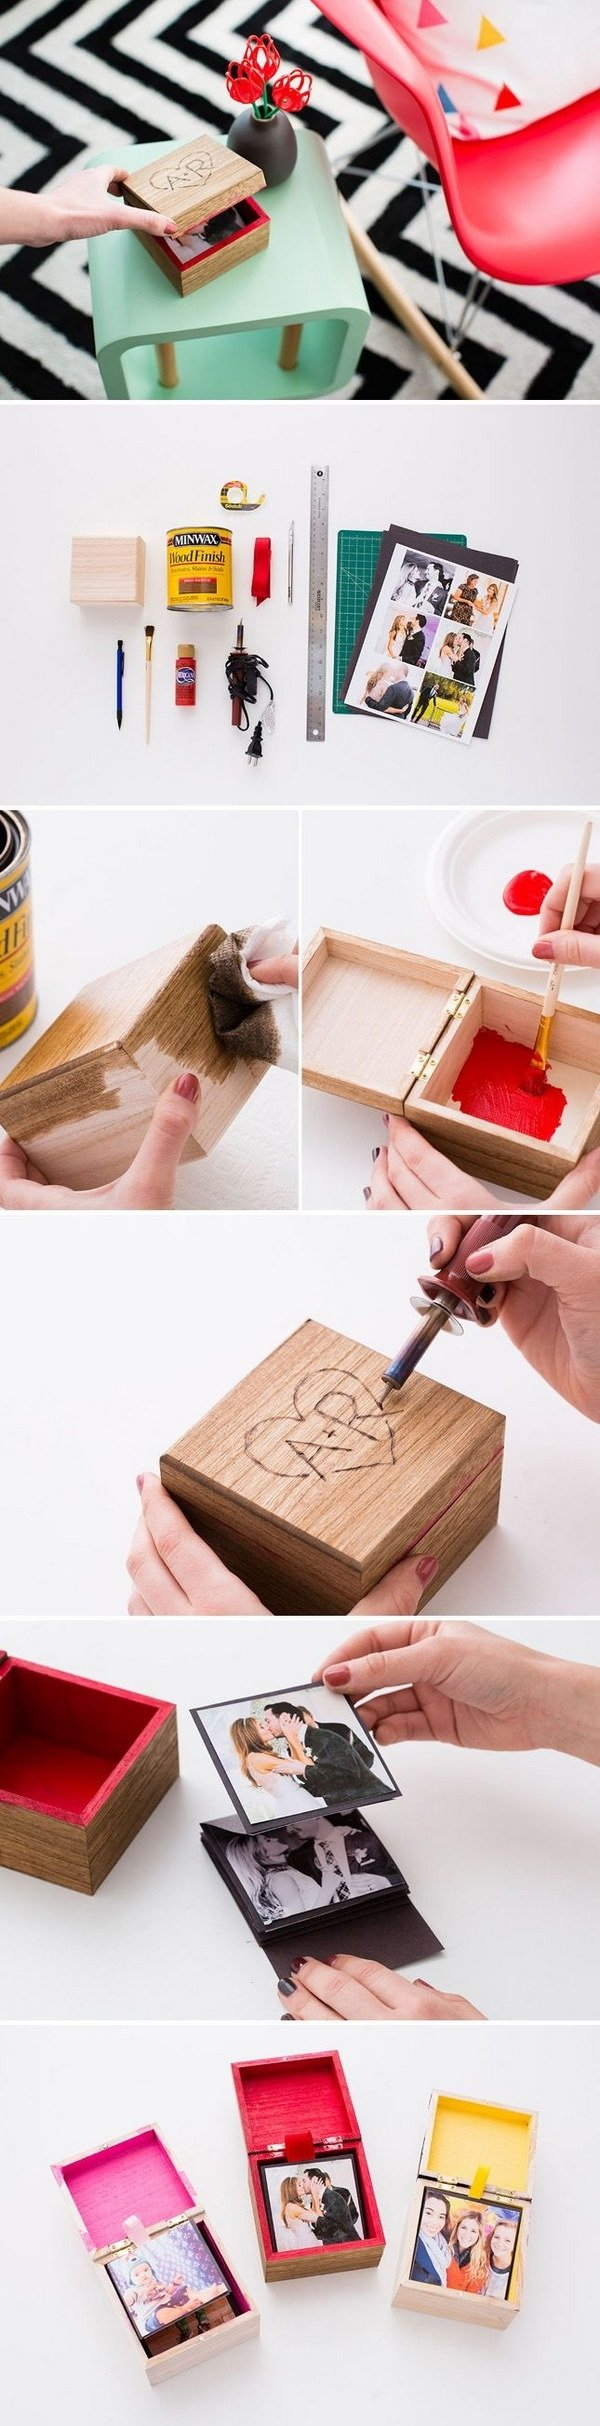 10 Awesome Homemade Christmas Ideas For Boyfriend 25 diy gifts for him with lots of tutorials 2017 4 2021